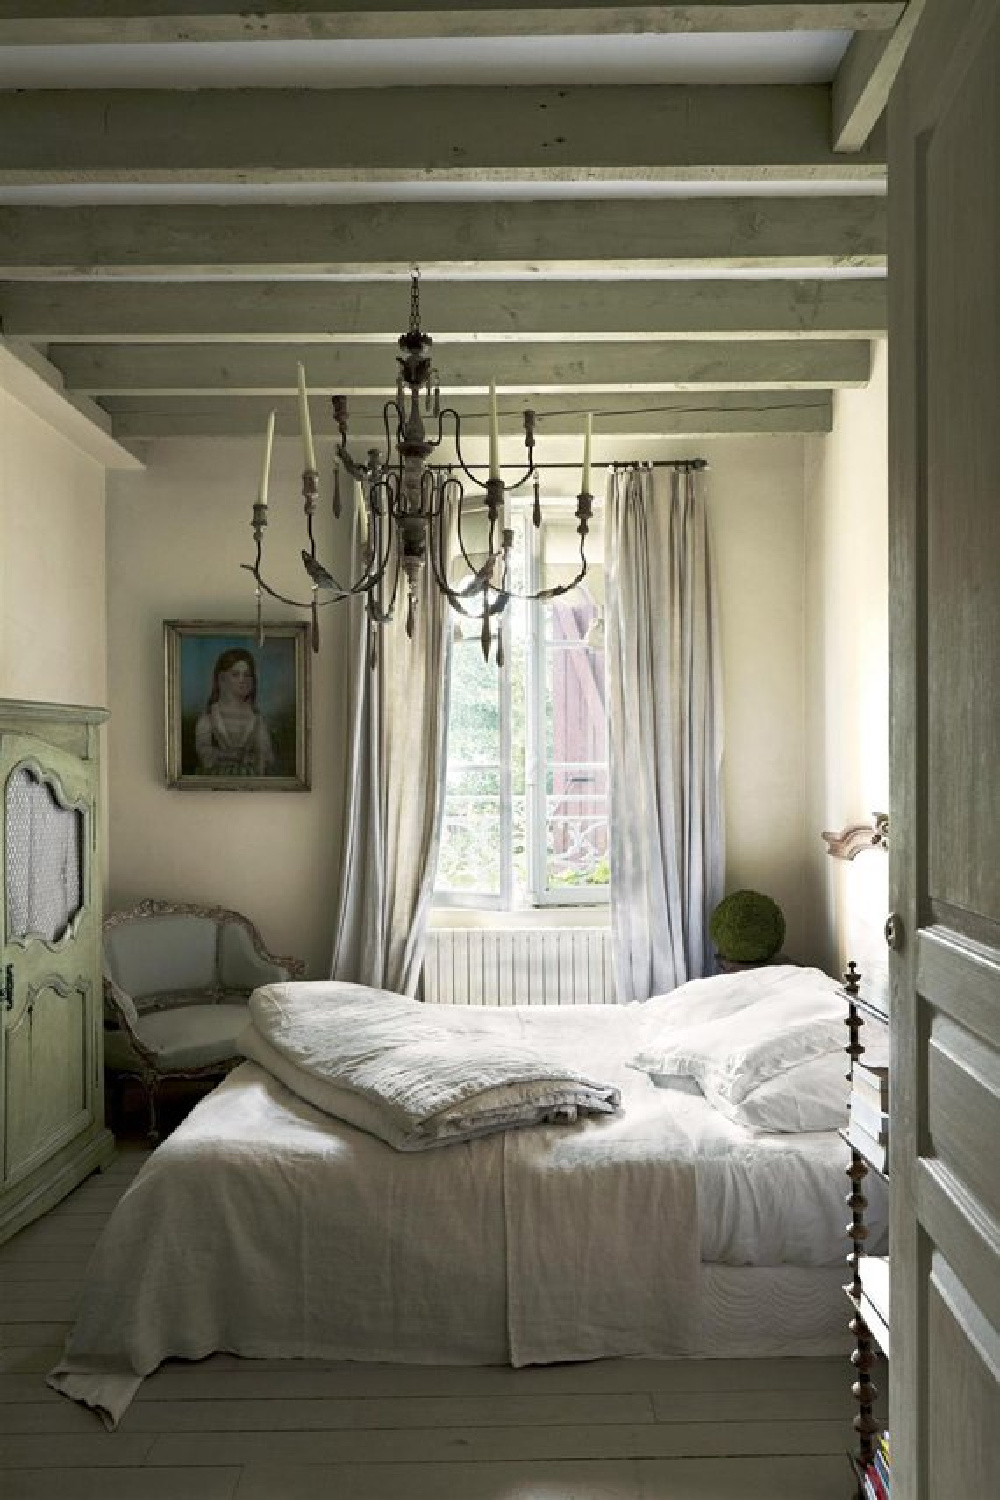 Ball Green by Farrow & Ball paint on the ceiling of a beautiful French country bedroom with chandelier and beams. #frenchcountry #frenchfarmhouse #interiordesign #farrowandball #ballgreen #paintcolors